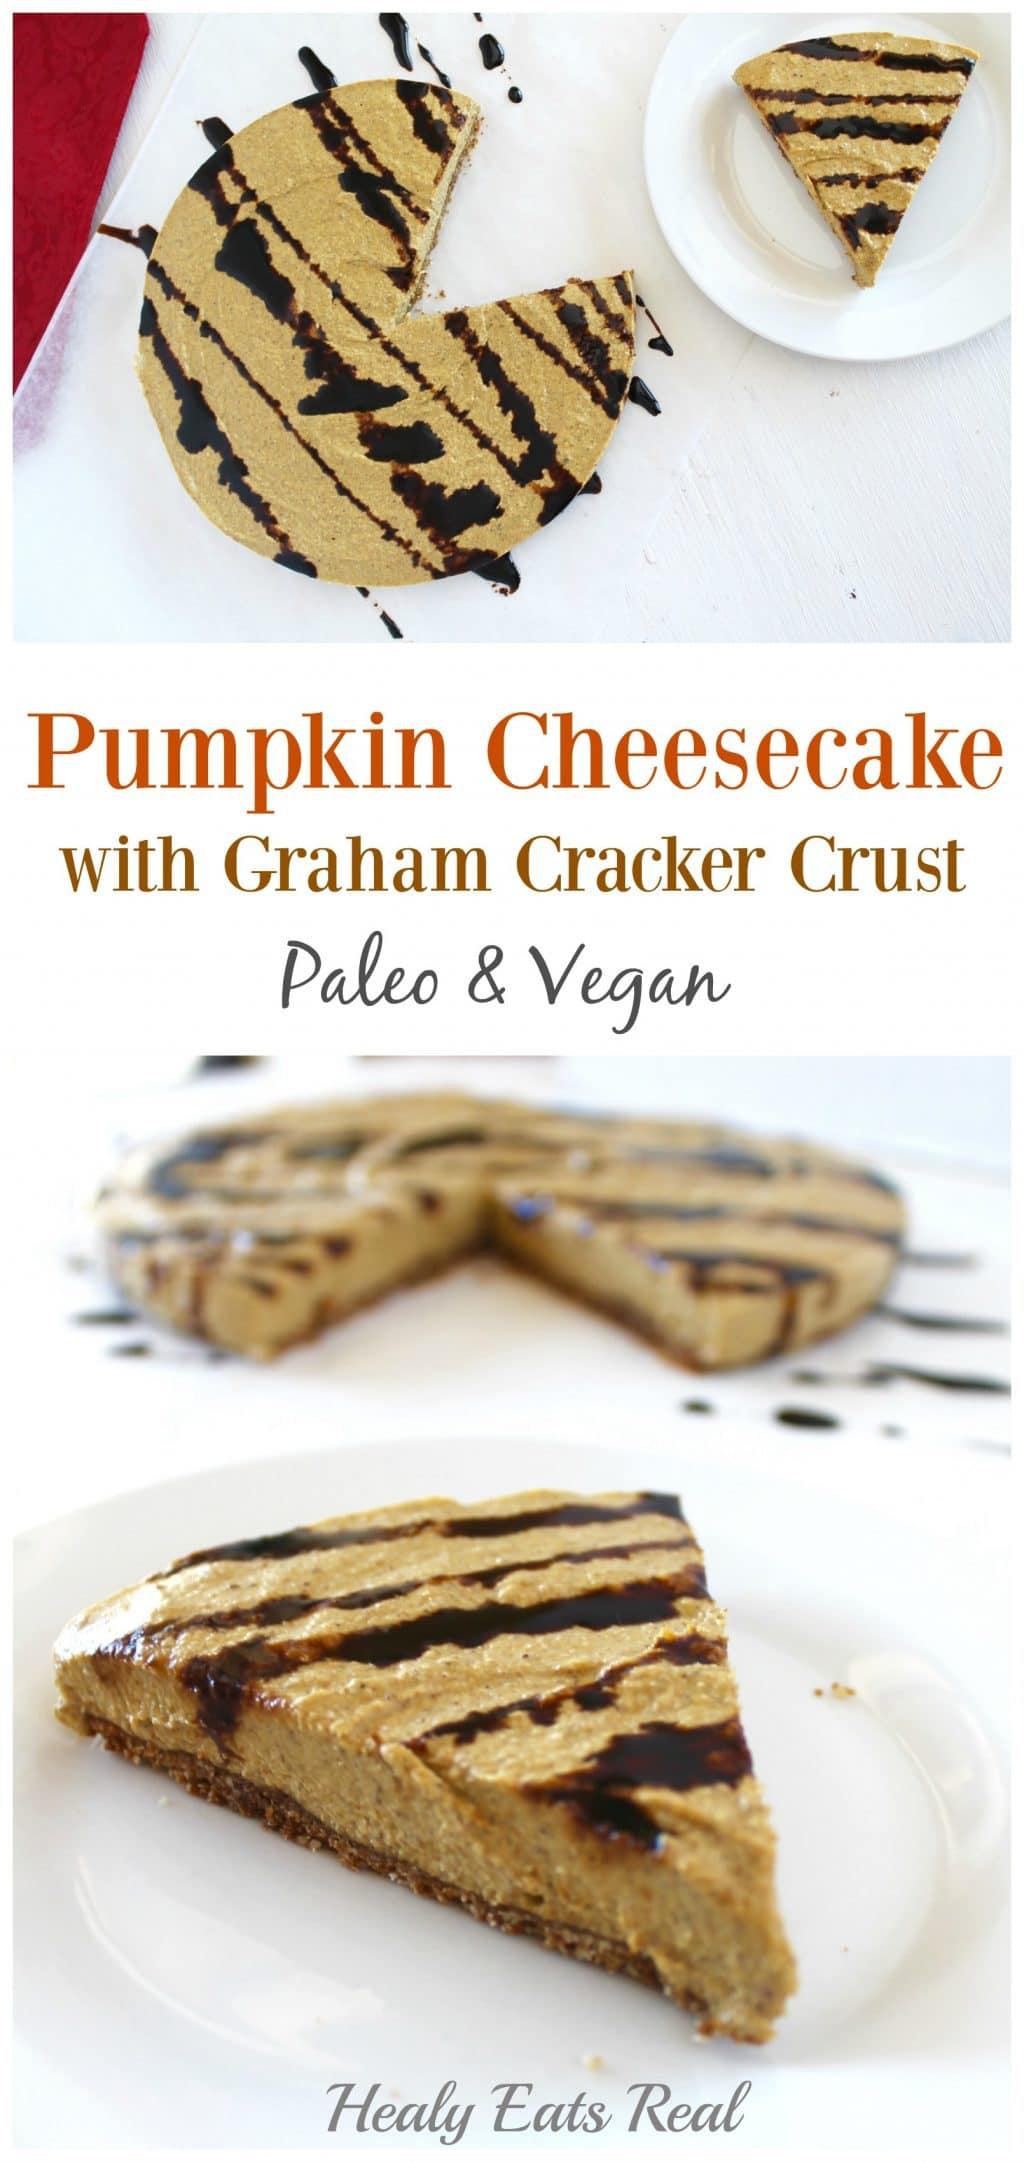 Paleo Pumpkin Cheesecake Recipe